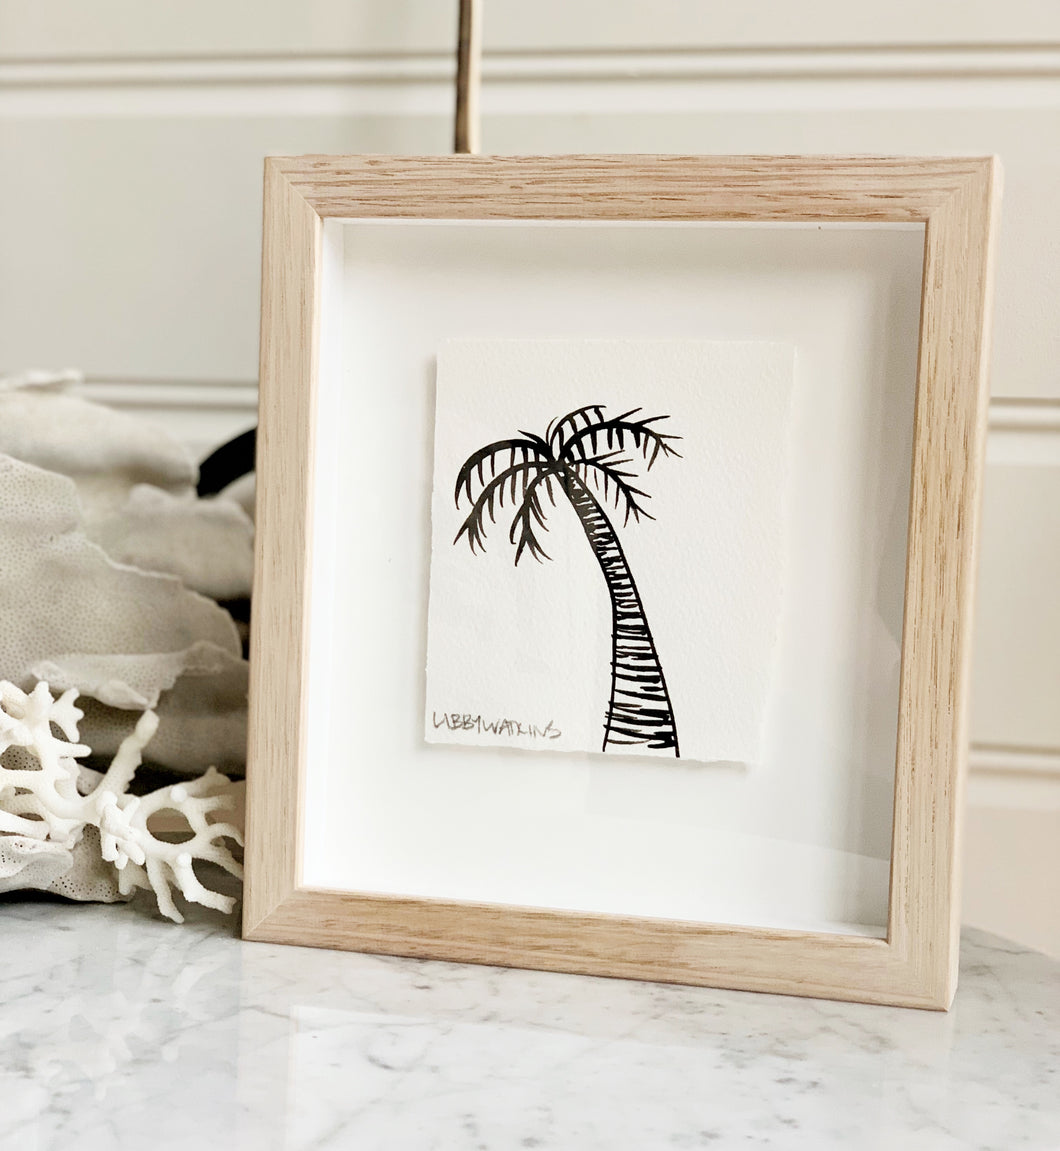 Signature Libby Watkins | Mini Ink Palm | 91801 | Made to order with artist Libby Watkins